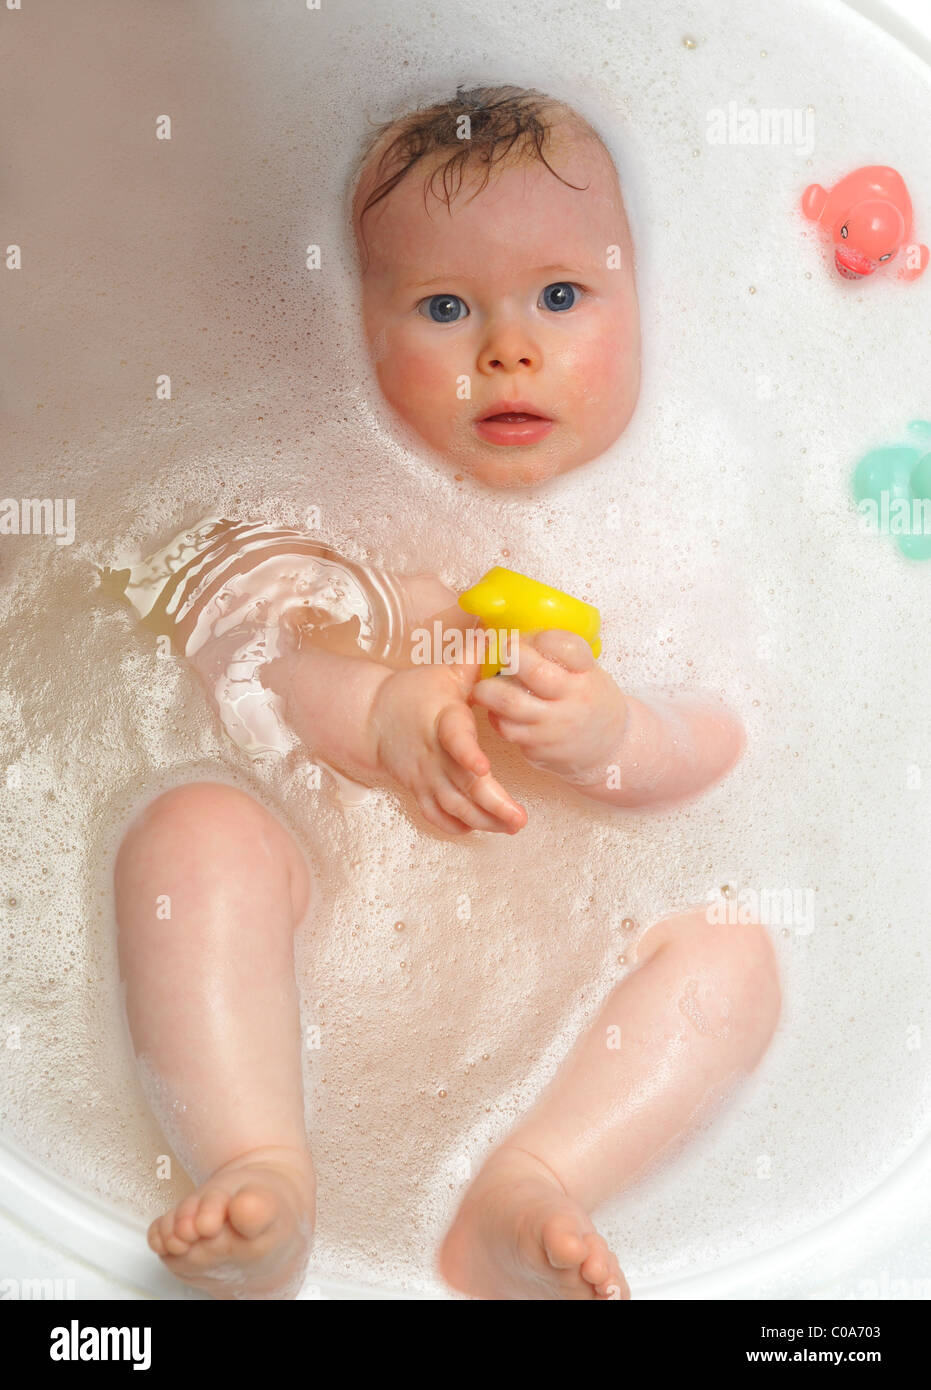 cute 6 month old baby bath bathtime toy ducks play infant clean ...